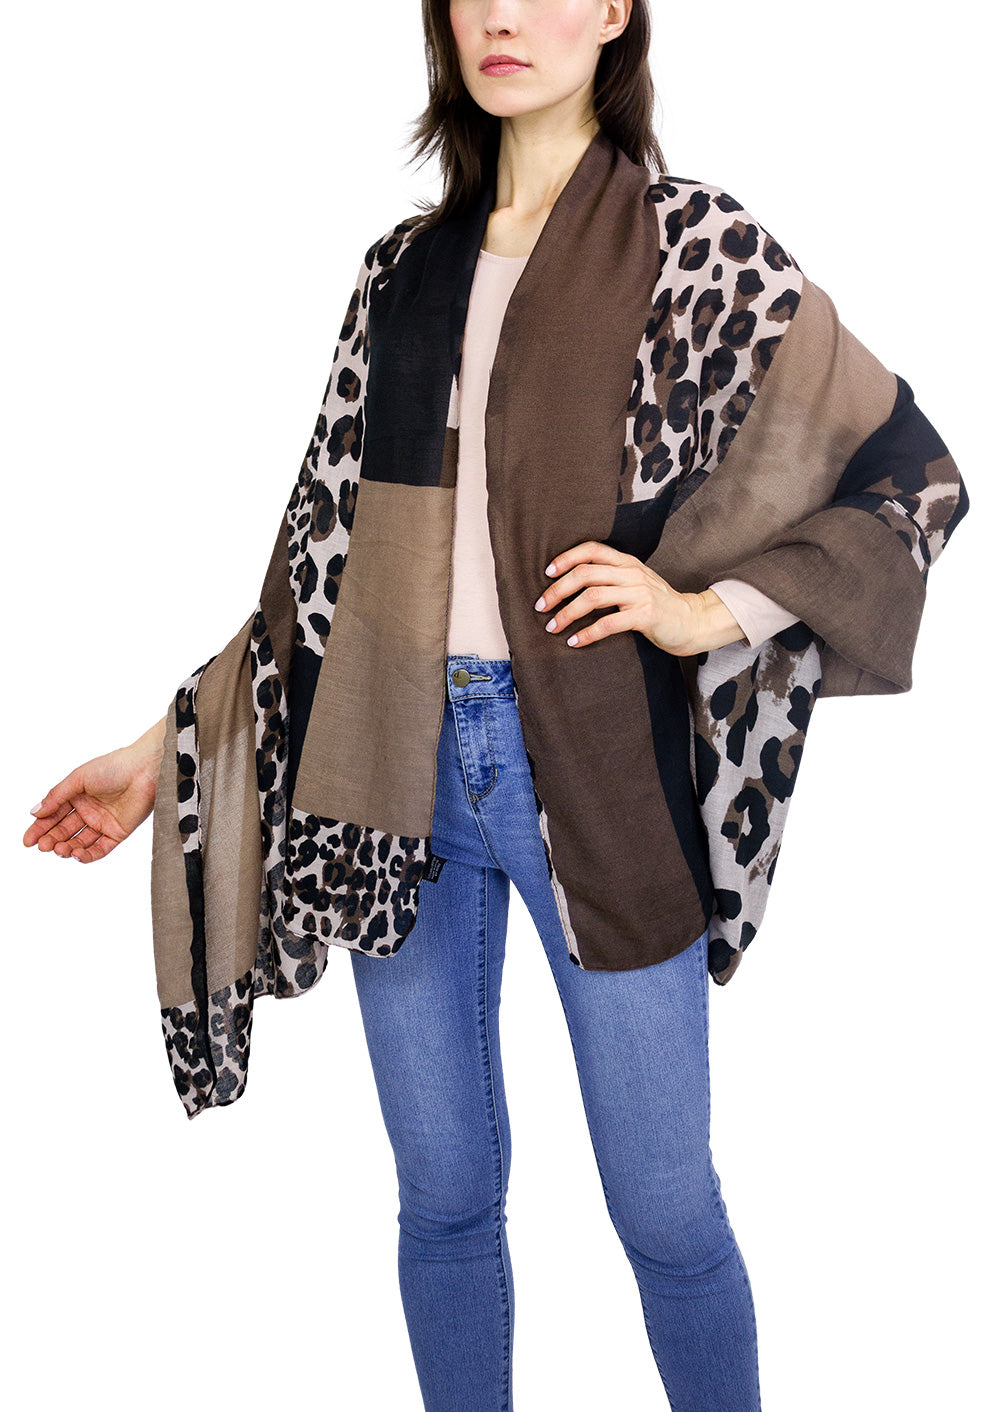 Colorblock Leopard Animal Shawl - Just Jamie